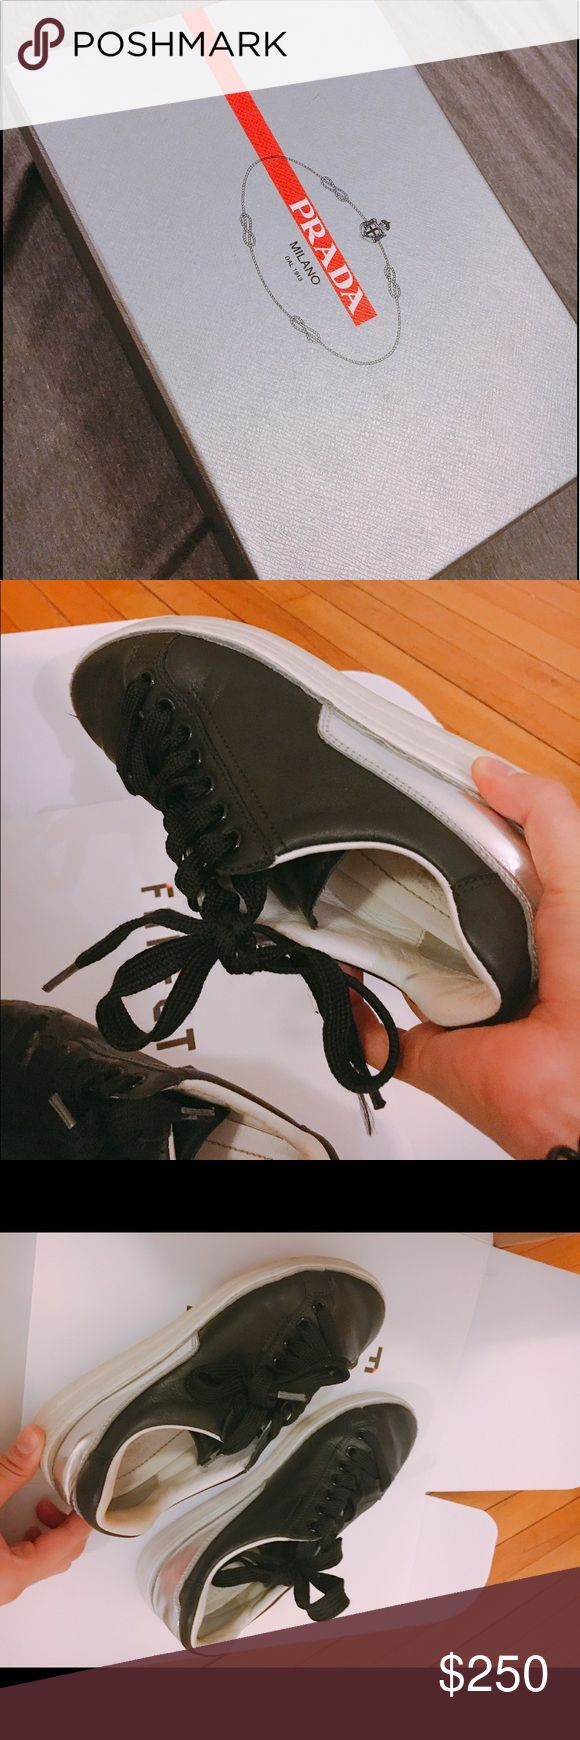 Prada Sneaker! only used twice. Size 5.5 Only wear twice!! My original size is 6.5 so that it's little bit small for me. 95% new!! Prada Shoes Sneakers